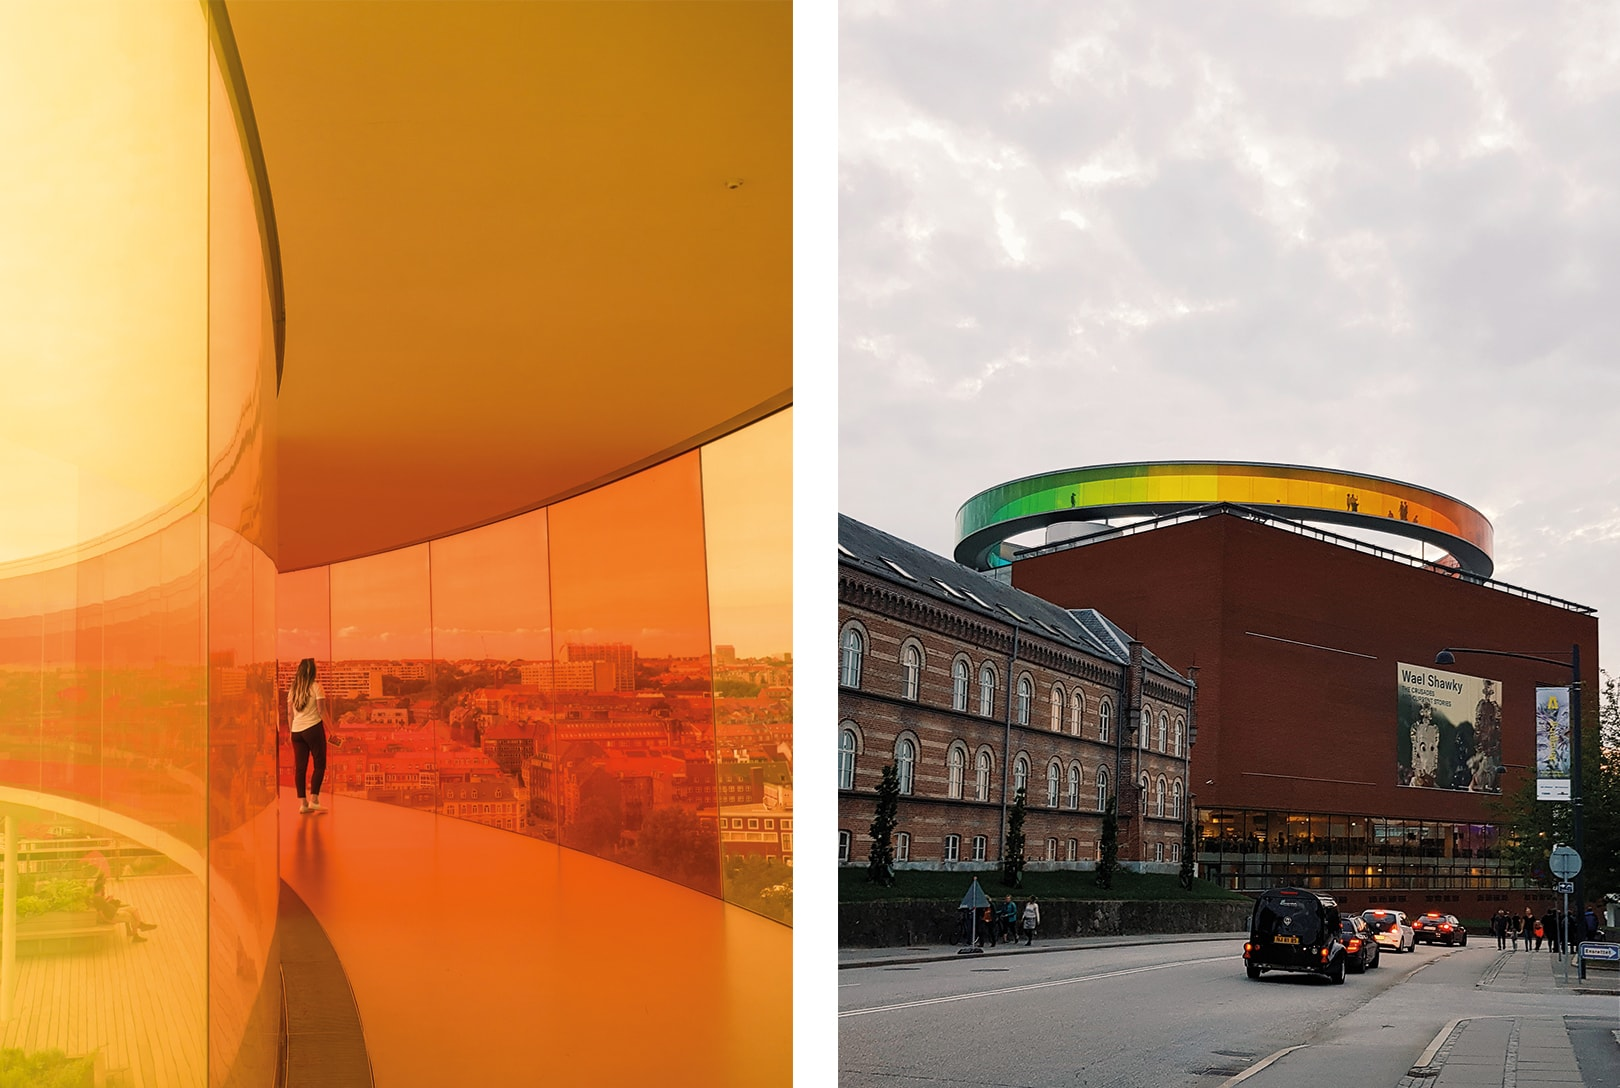 Two days in Aarhus - Denmark's happiest city. Your Rainbow Panorama at ARoS Aarhus Art Museum